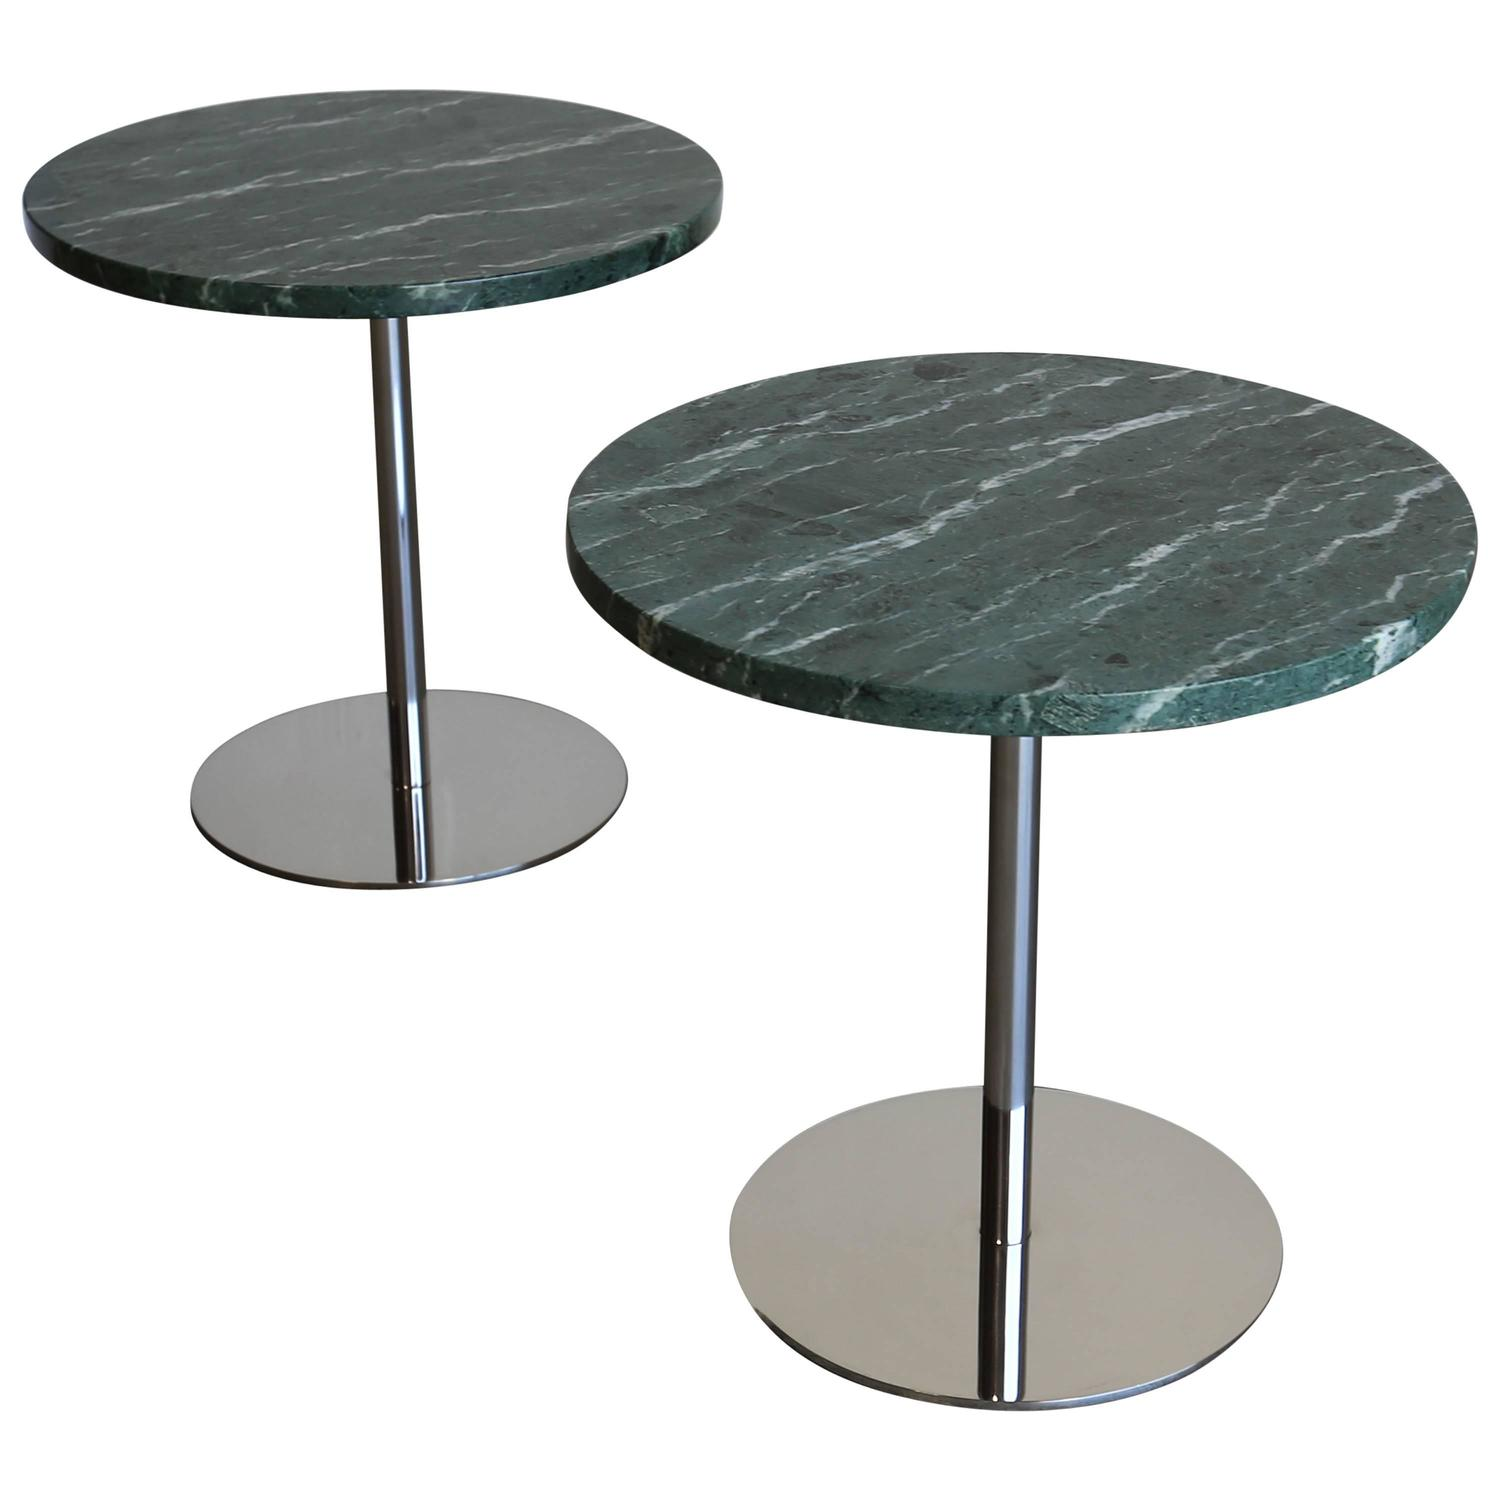 Pair Of Marble And Stainless Steel Side Tables By Gerald R